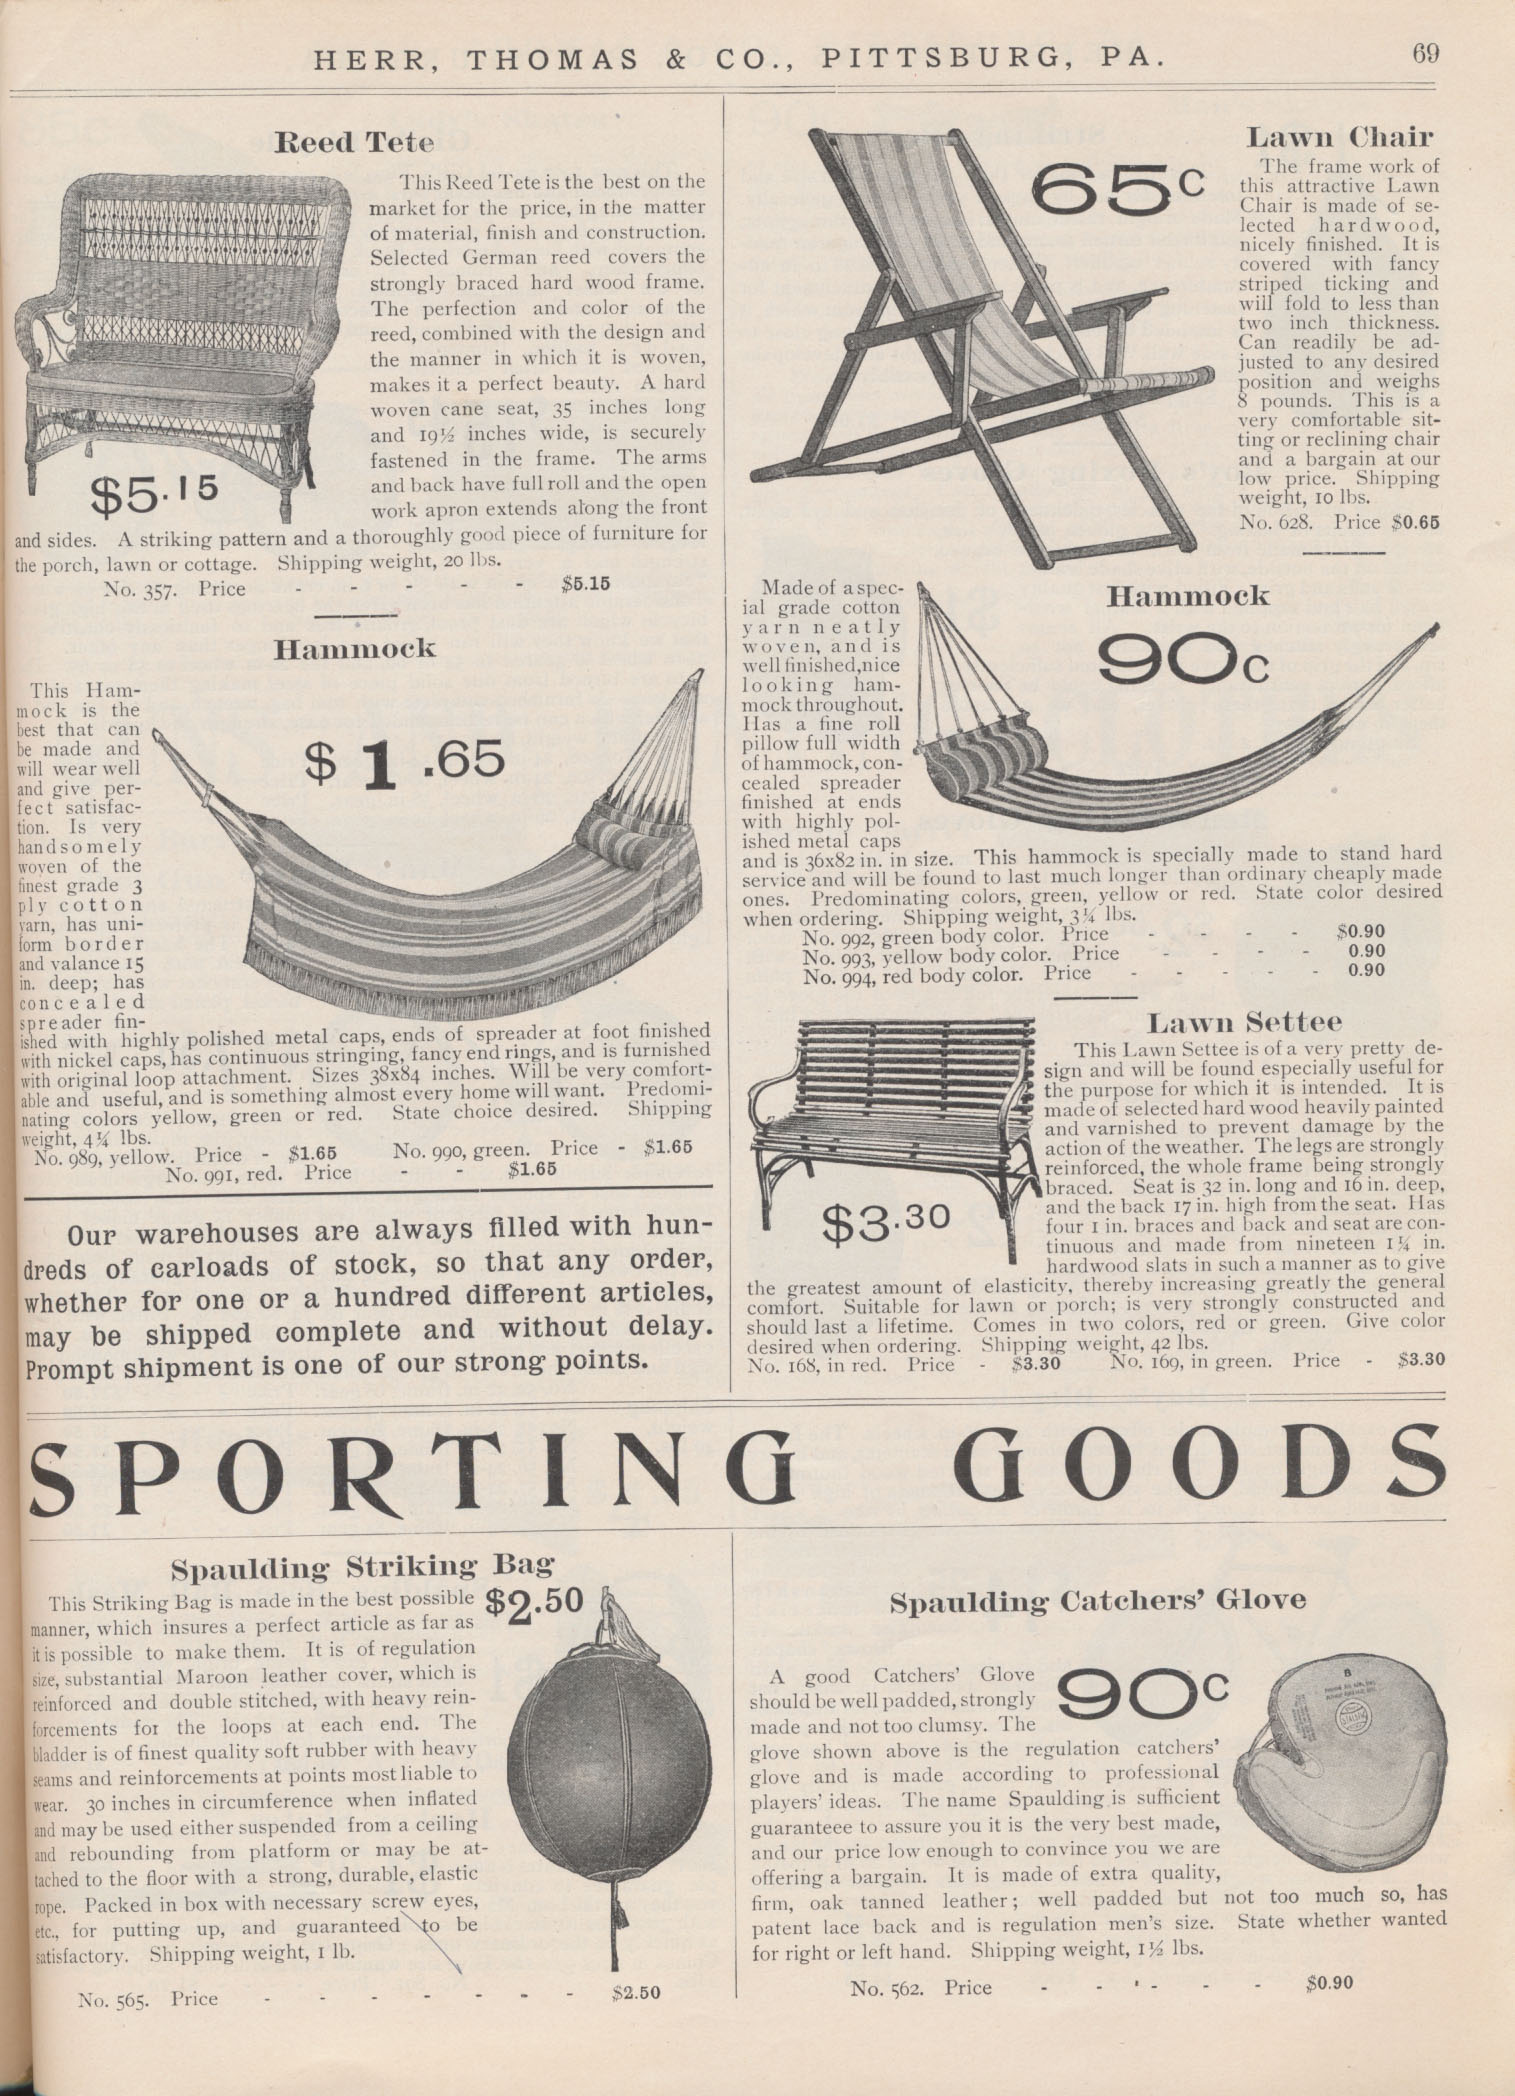 Lawn and porch furniture including reed tete, lawn chair, two hammocks, and lawn settee and Sporting Goods including Spaulding Striking Bag and Spaulding Catchers' Glove